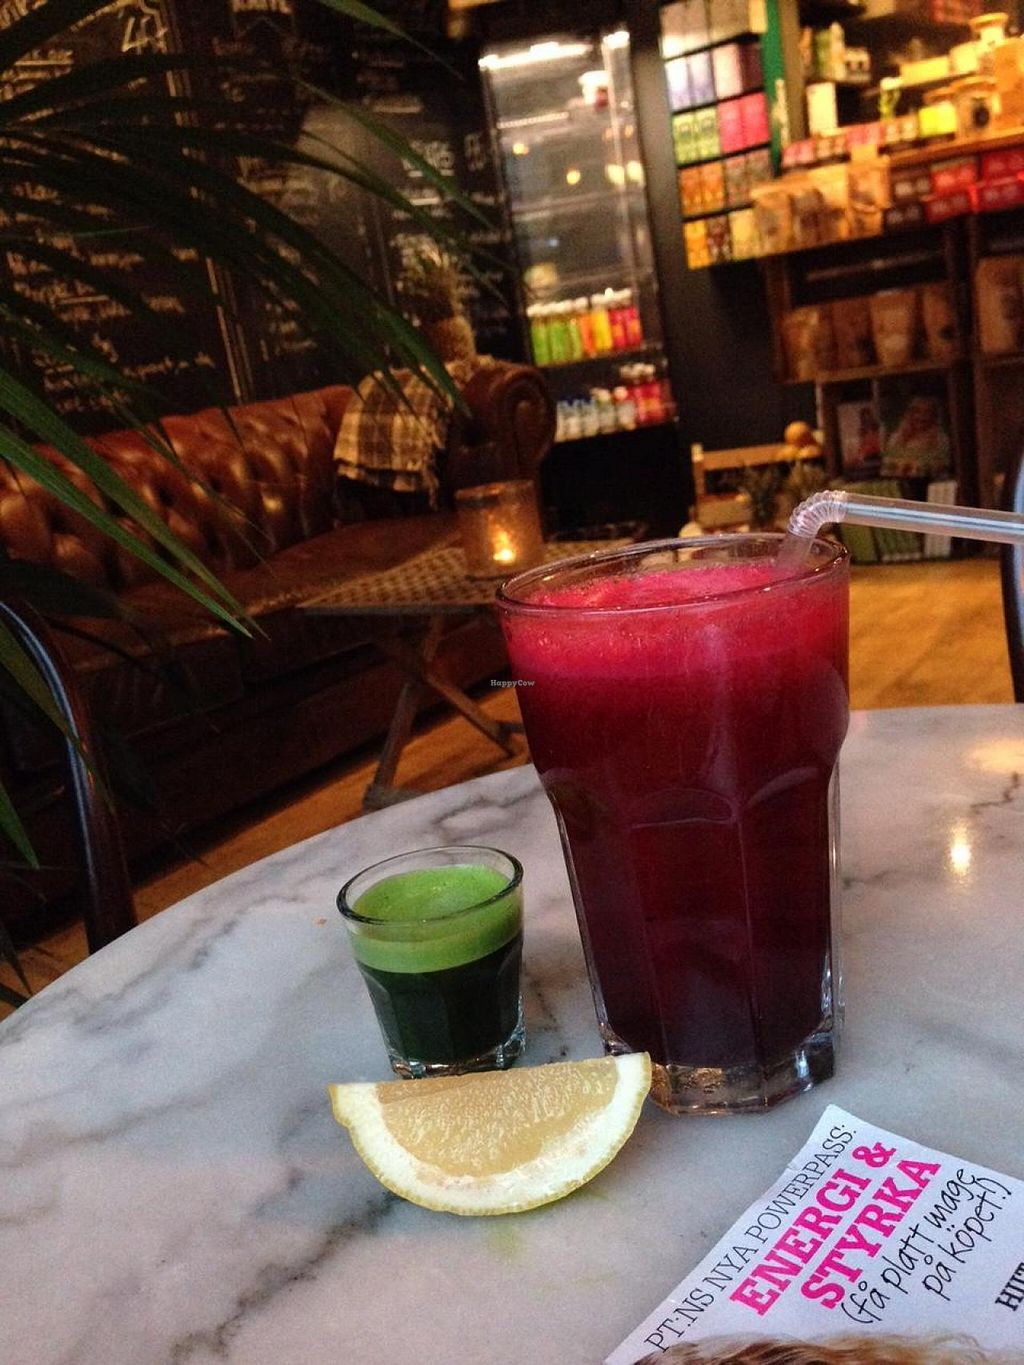 """Photo of Fruits and Friends Juicebar  by <a href=""""/members/profile/anderssonfelice"""">anderssonfelice</a> <br/>'Beet me' juice (beet root, ginger, celery etc) and a wheat grass shot <br/> December 30, 2014  - <a href='/contact/abuse/image/46659/89000'>Report</a>"""